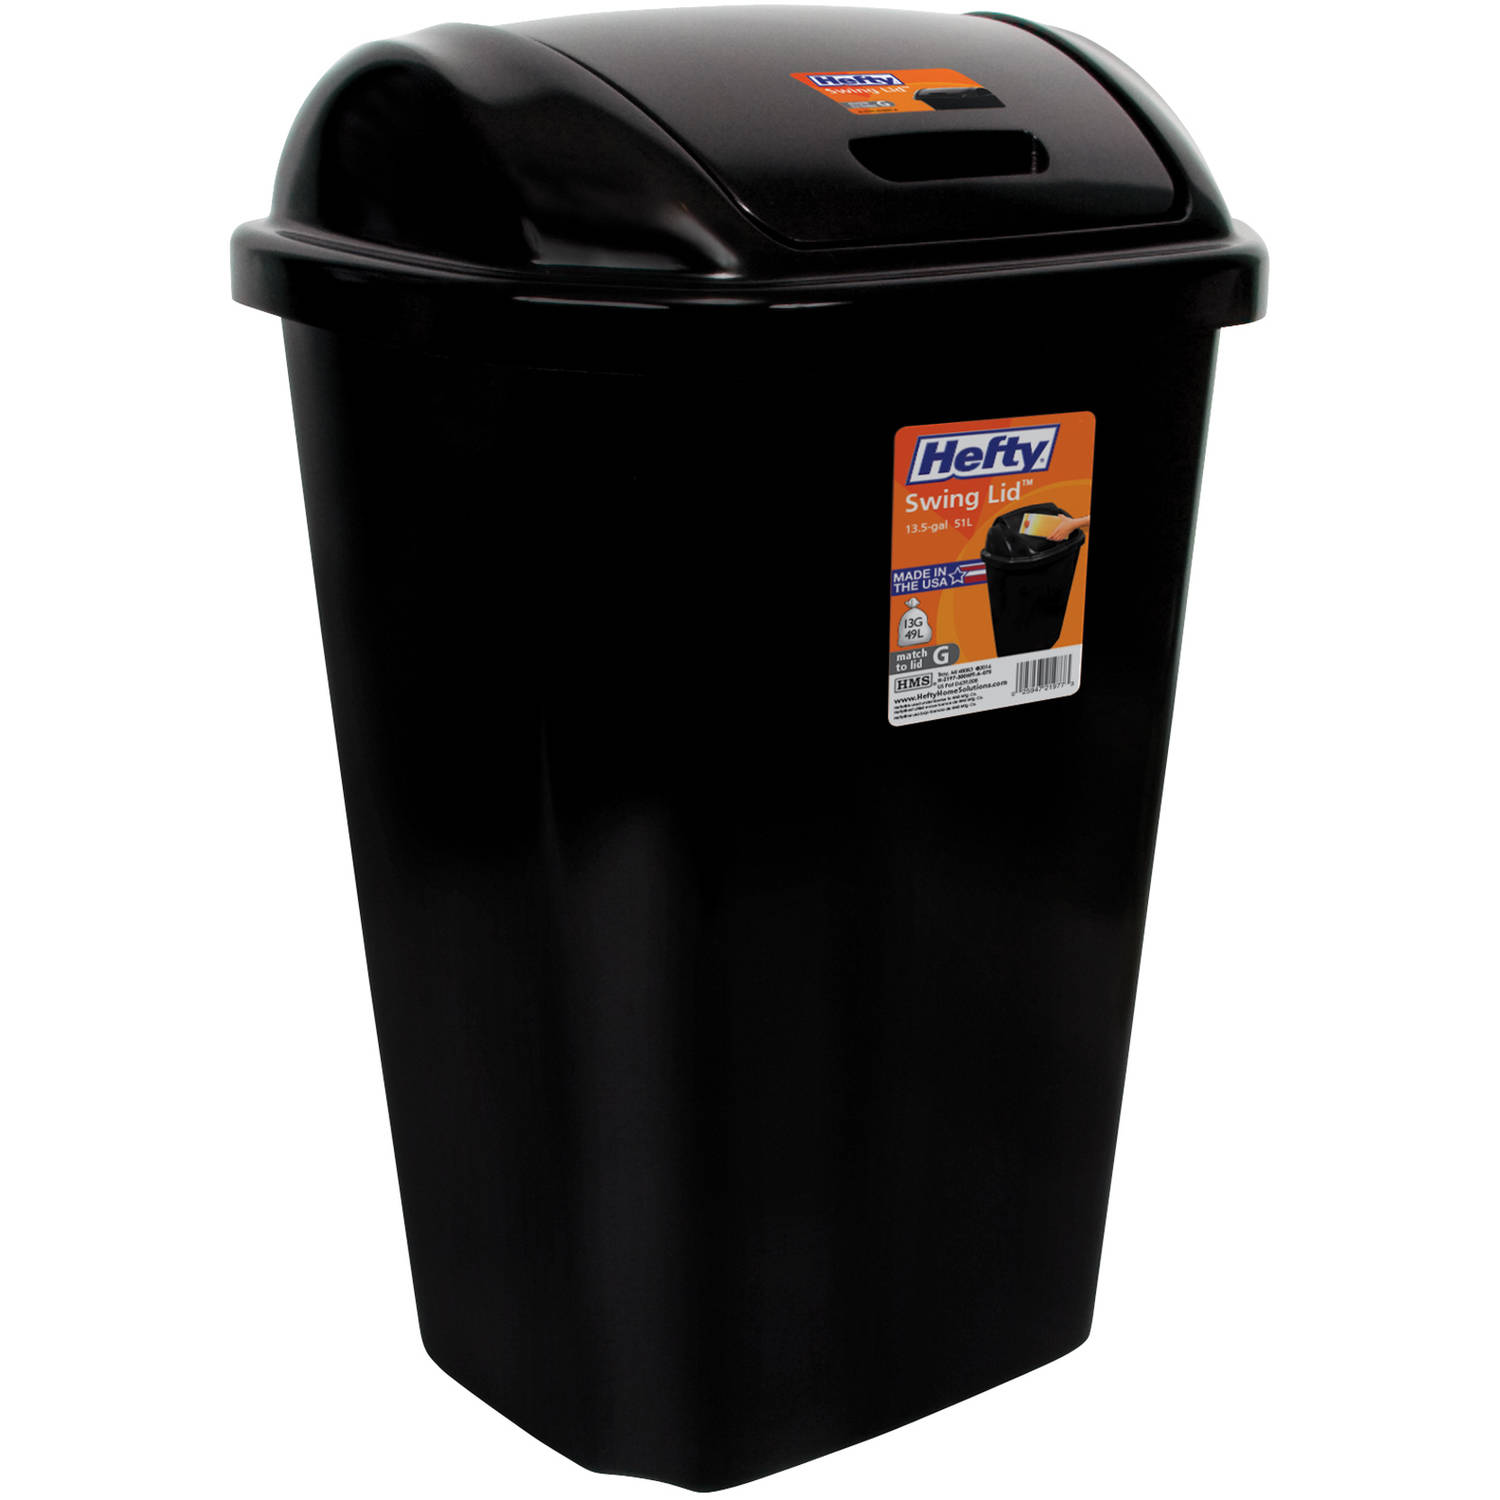 Hefty Swing Lid 13.5 Gallon Trash Can, Multiple Colors   Walmart.com